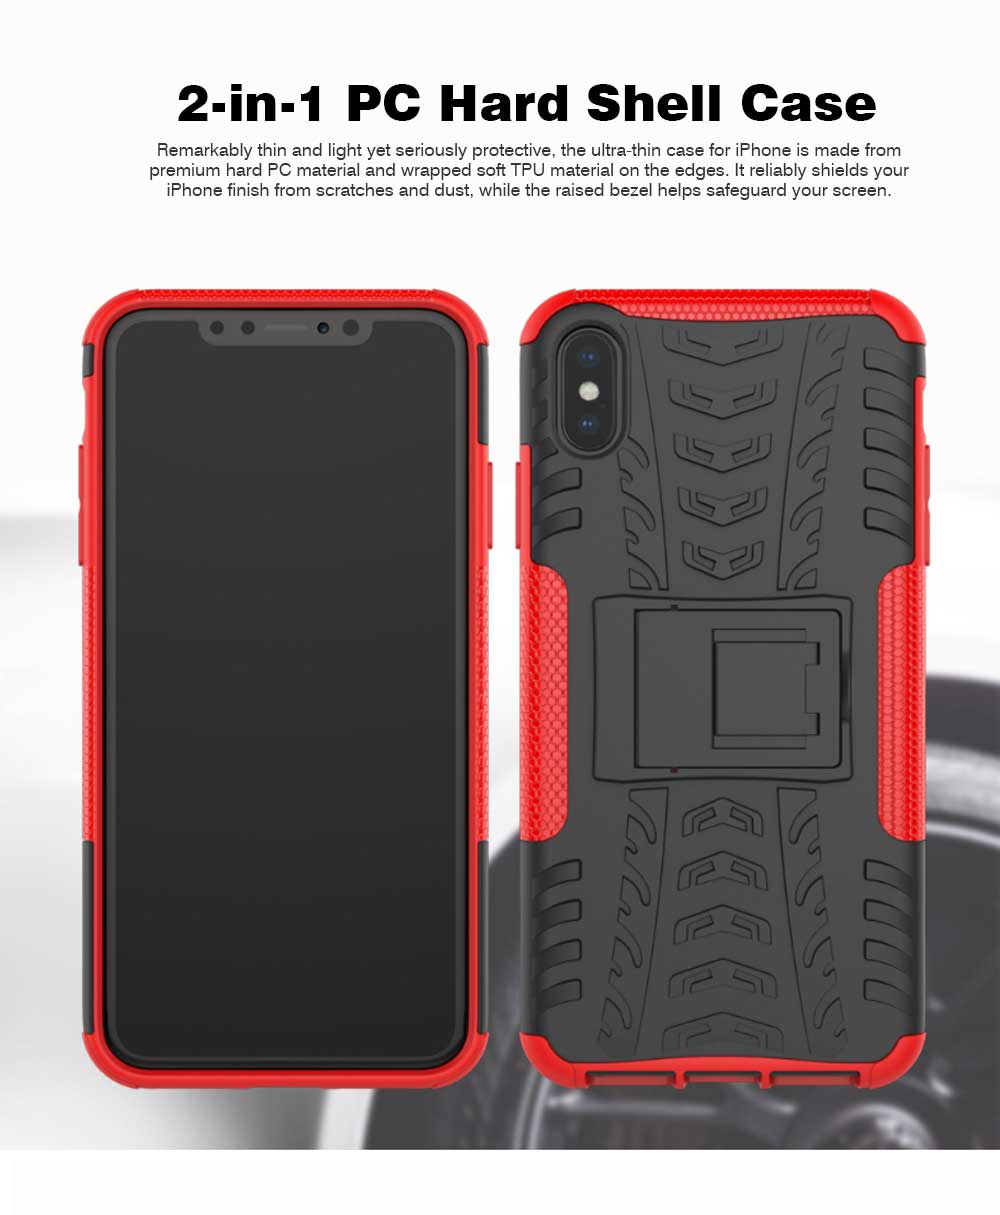 2- in-1 PC Hard Shell for iPhone 7/8/7P/8P/X/XS/XS Max, Anti-collision Hard Back Case with Stand Function, Businessman Protective Phone Cover 0